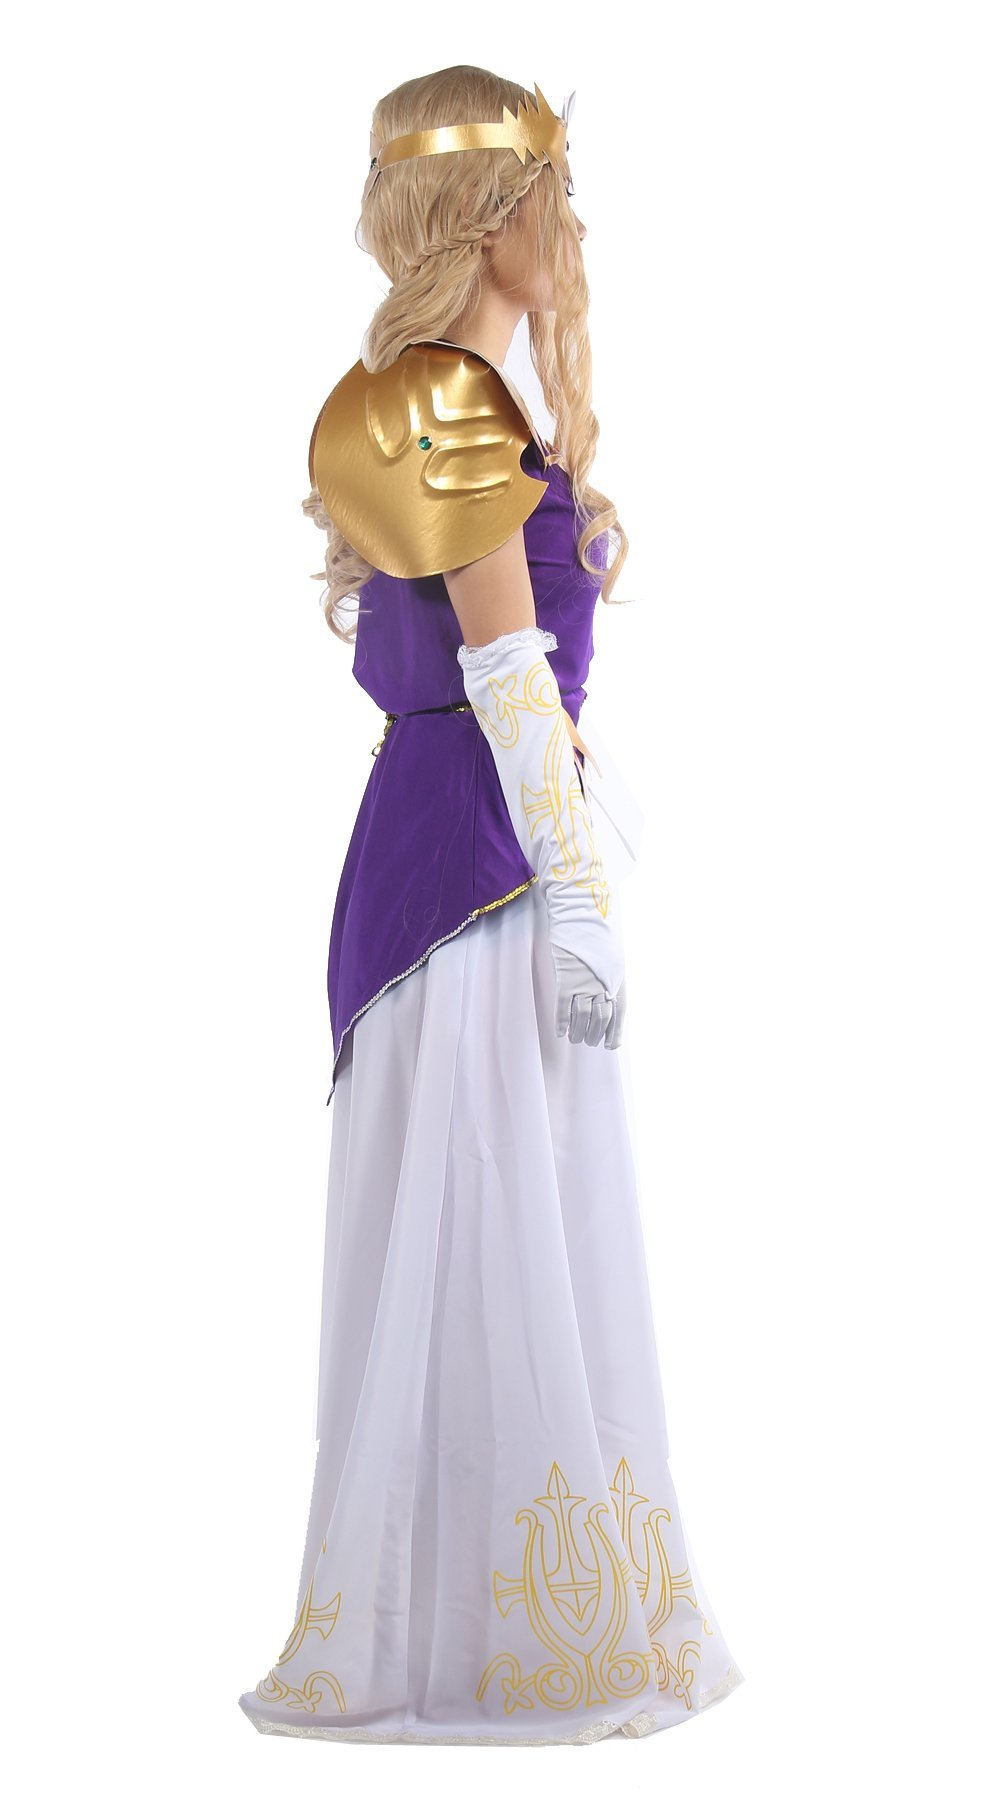 xcoser-de,Princess Zelda Costume The Legend of Zelda Cosplay Dress,Game Cosplay,Themes